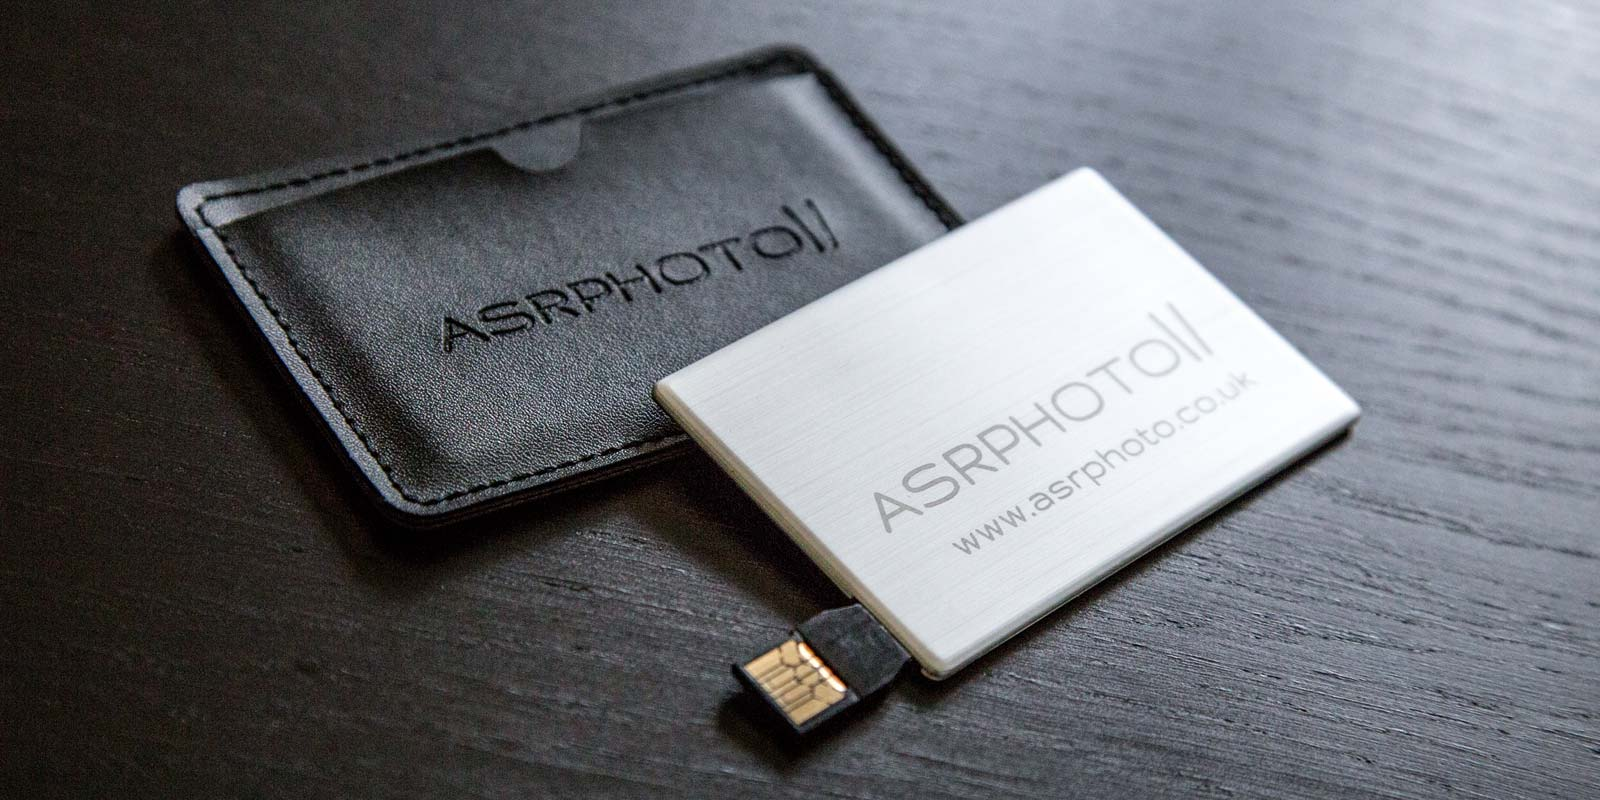 ASRPHOTO Wedding Photography Southampton USB Flash Drive